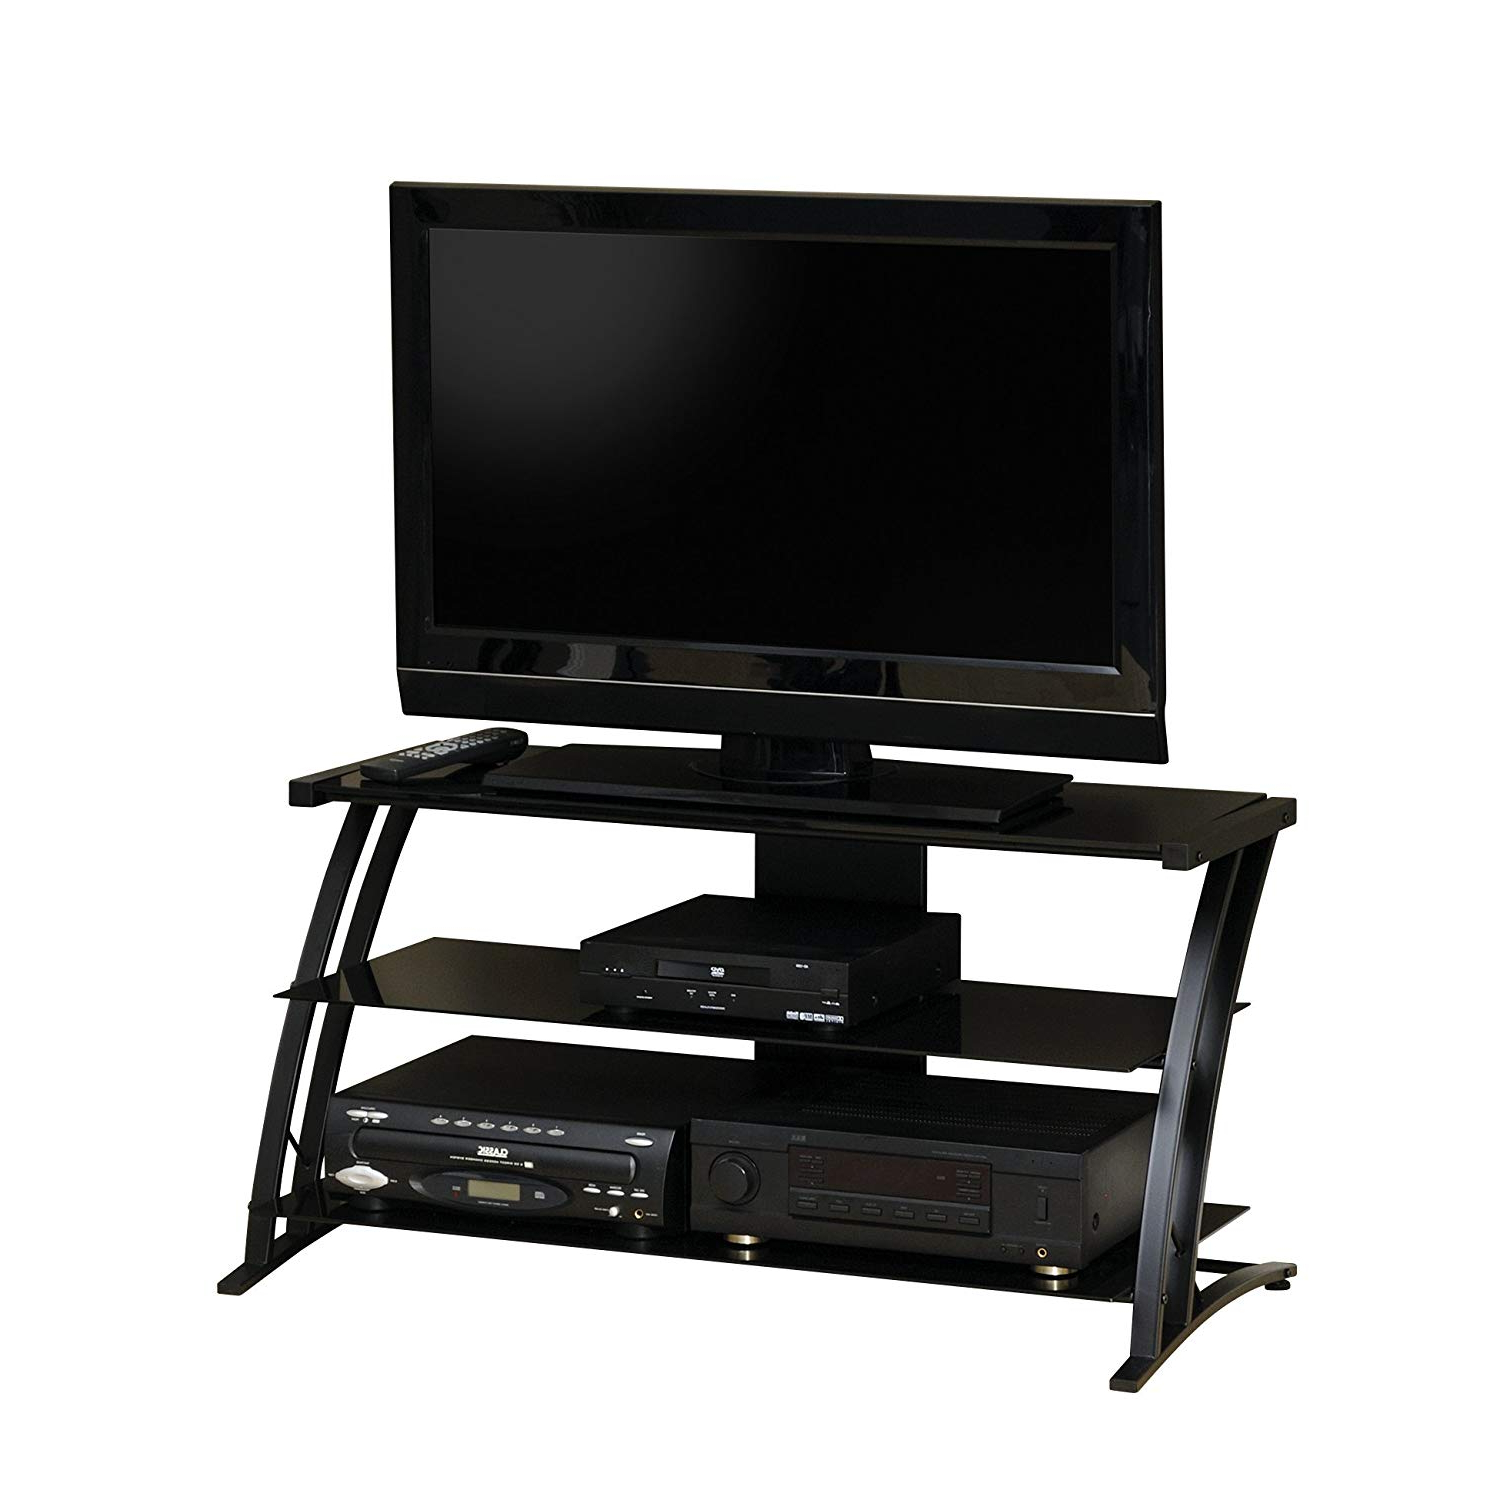 Easel Tv Stands For Flat Screens Intended For Famous Easel Tv Stands Flat Screens Screen Tv For 90plus (View 12 of 20)